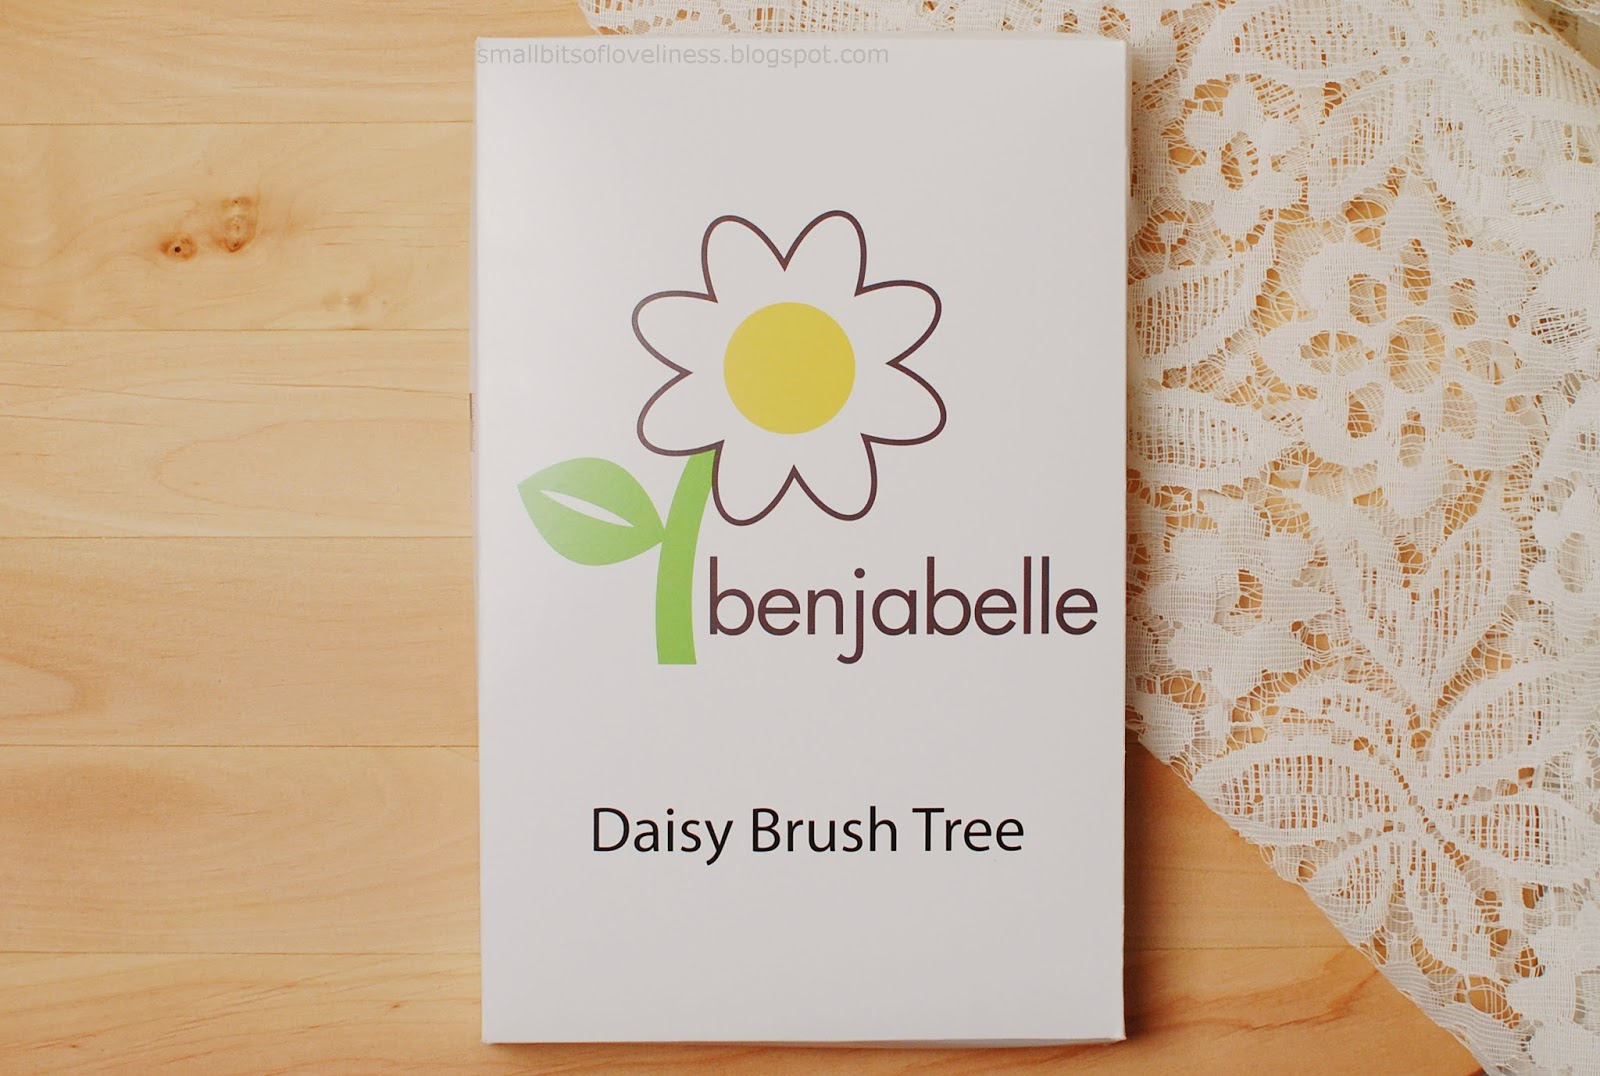 Benjabelle Daisy Brush Tree